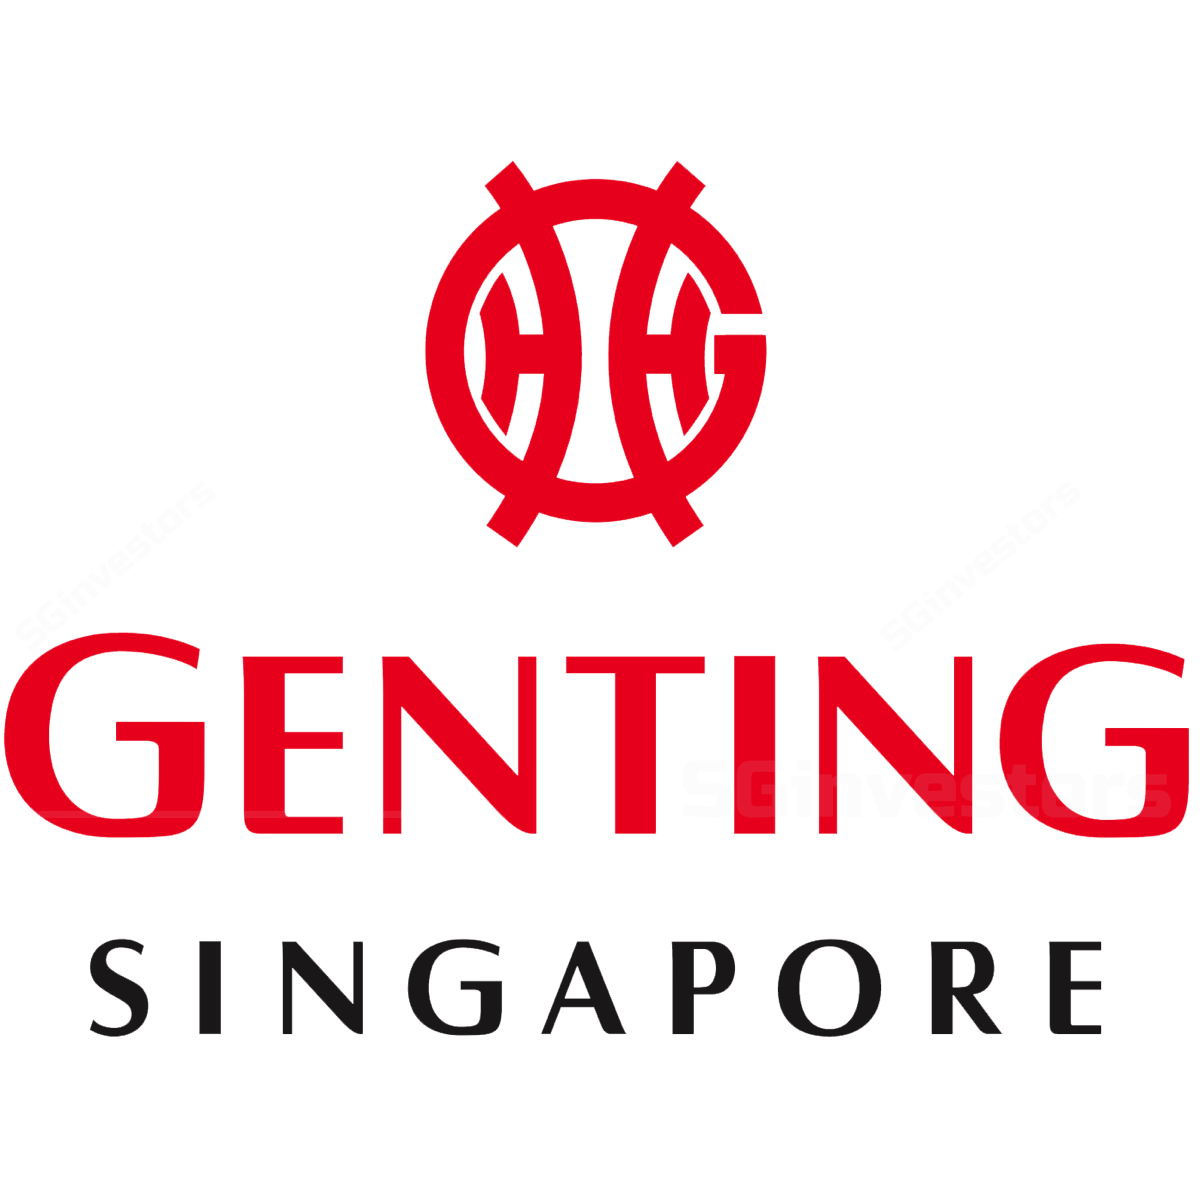 Genting Singapore - DBS Group Research Research 2018-08-06: Keep Your Winning Hand